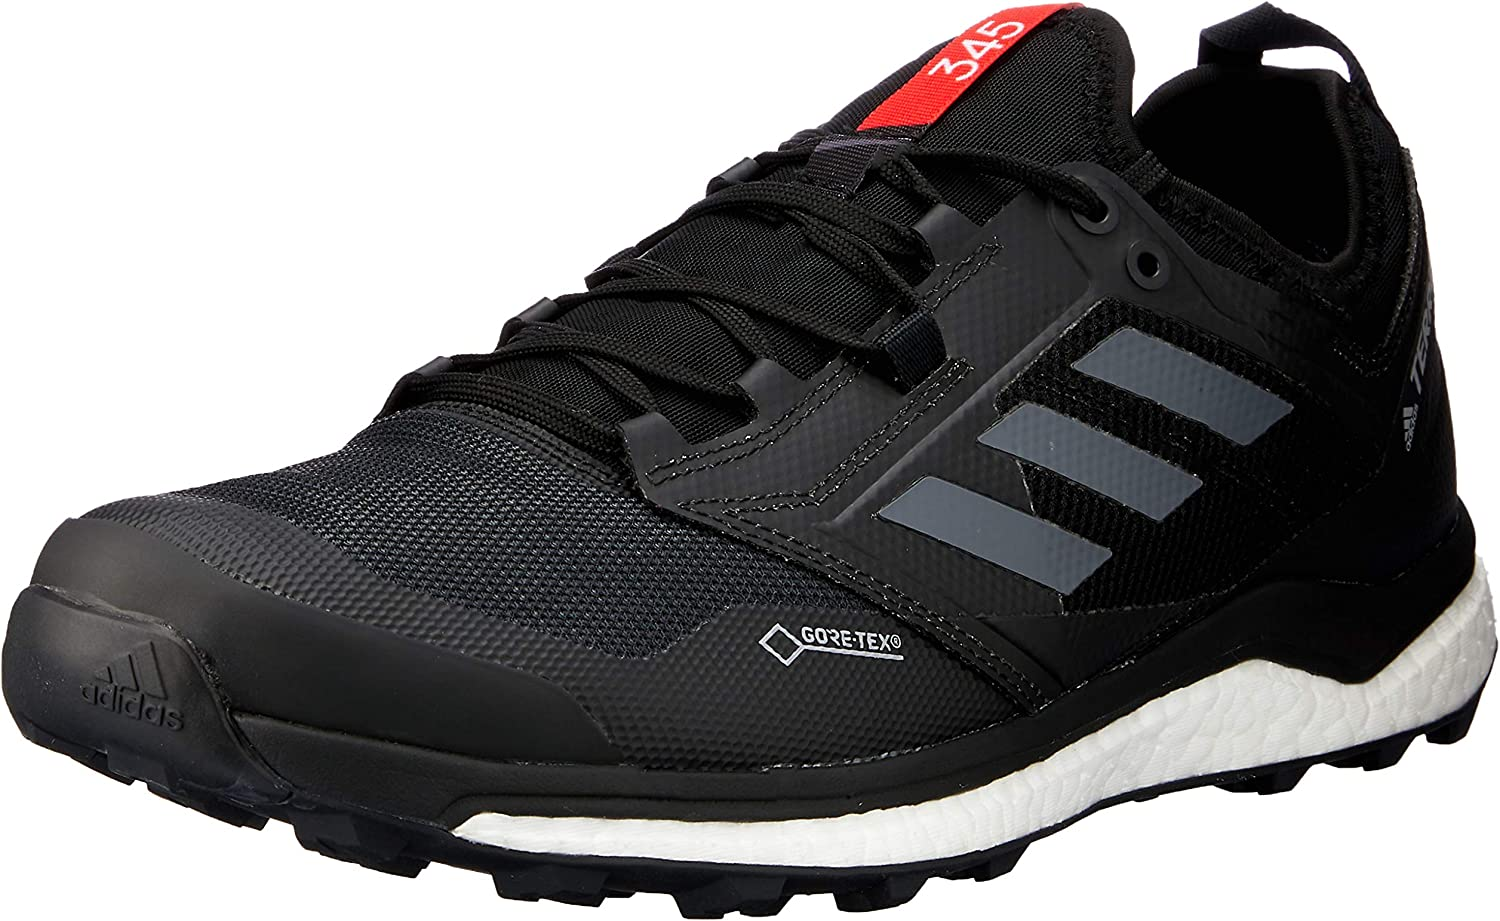 whisky bicicleta transferencia de dinero  Amazon.com | adidas Terrex Agravic XT Gore-TEX Trail Running Shoes - AW20 |  Trail Running